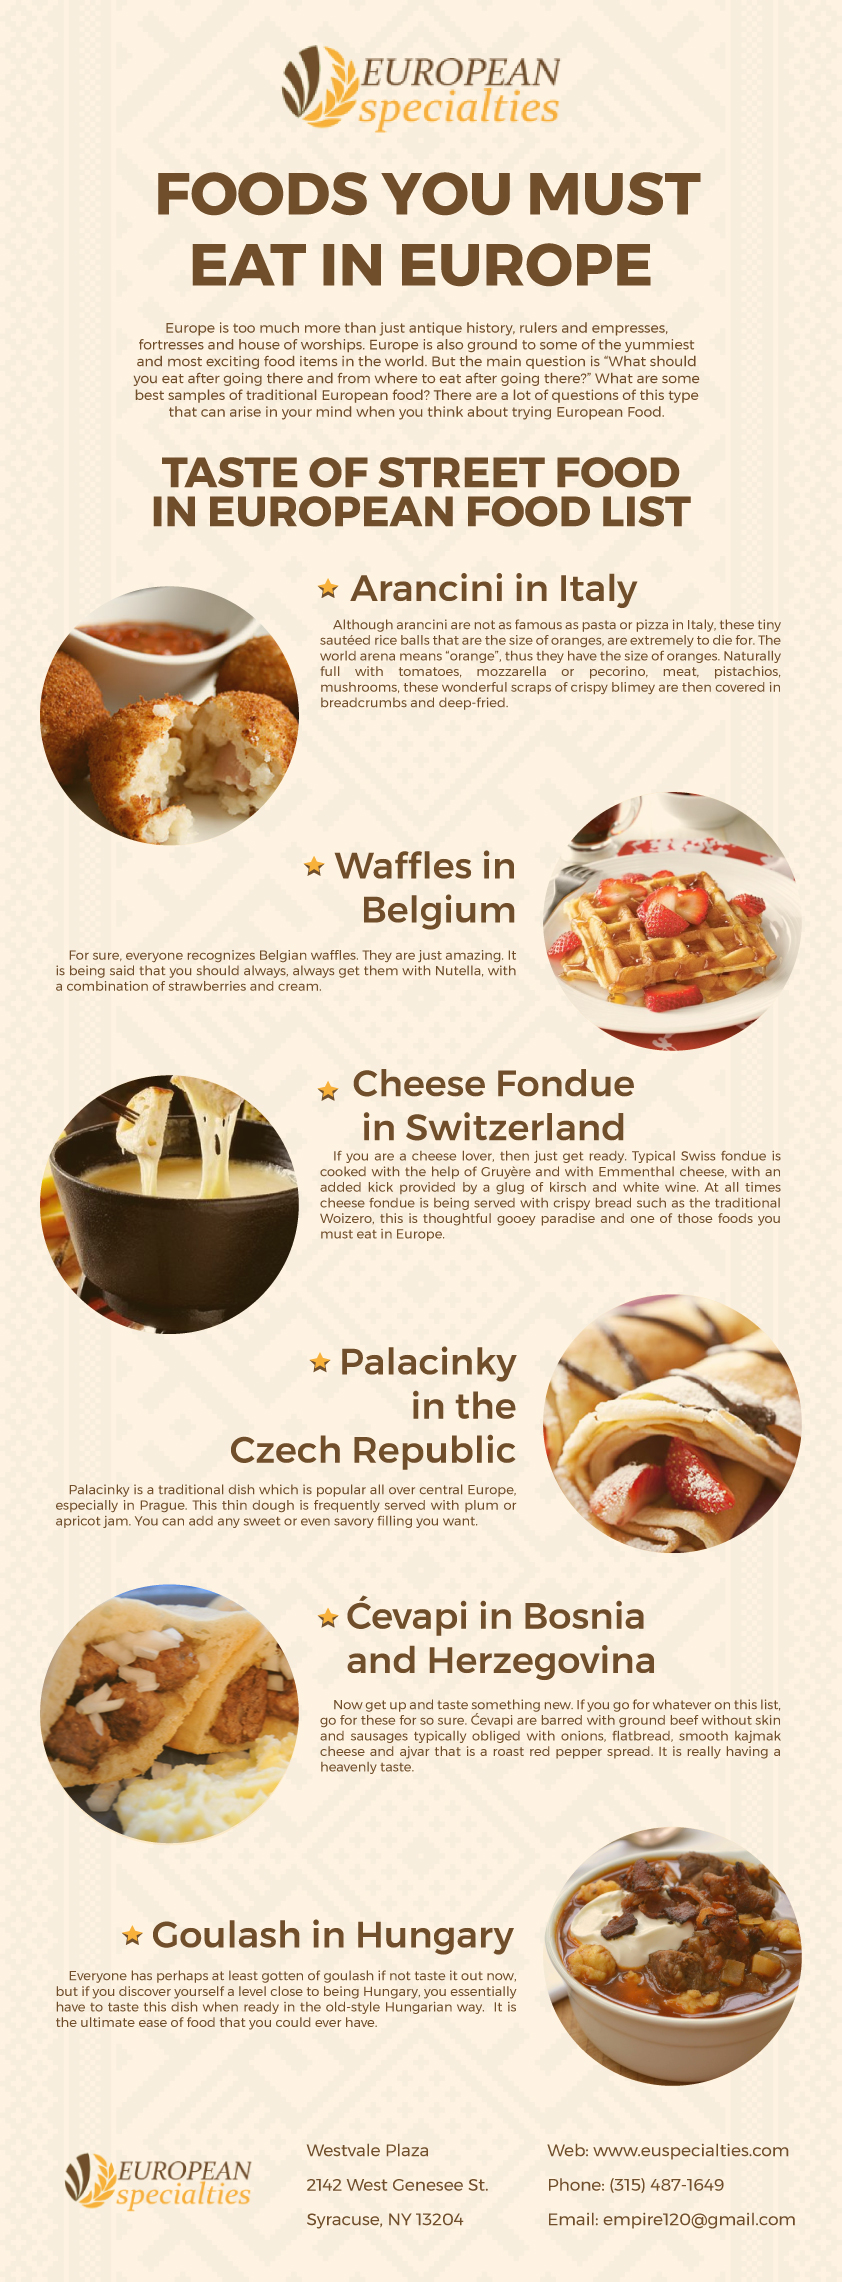 foods-you-must-eat-in-europe